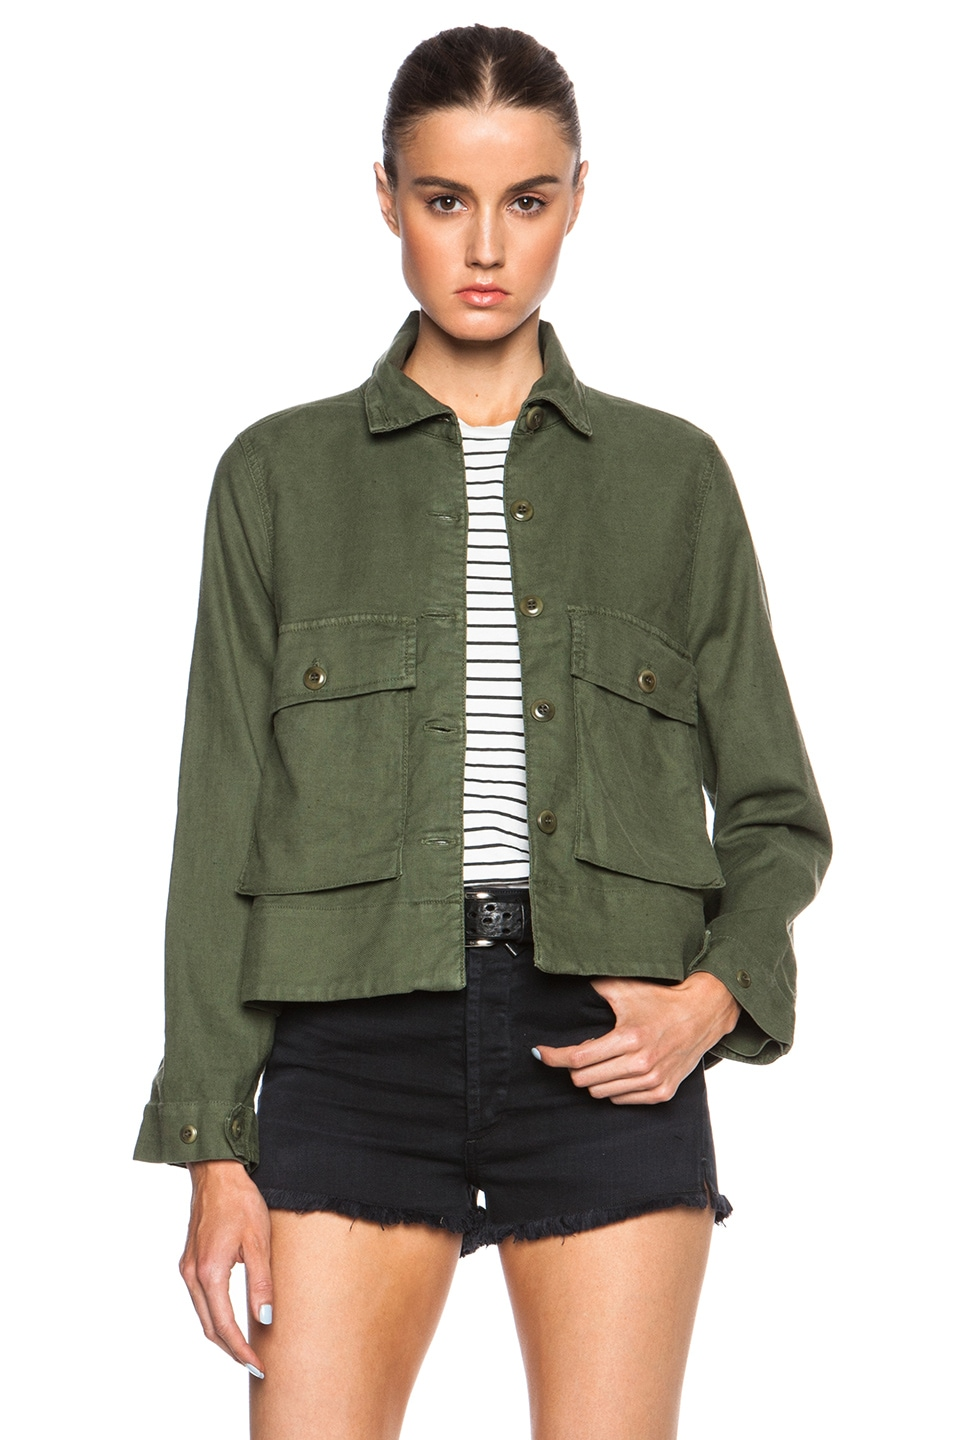 Image 1 of The Great Swingy Army Jacket in Beat Up Army